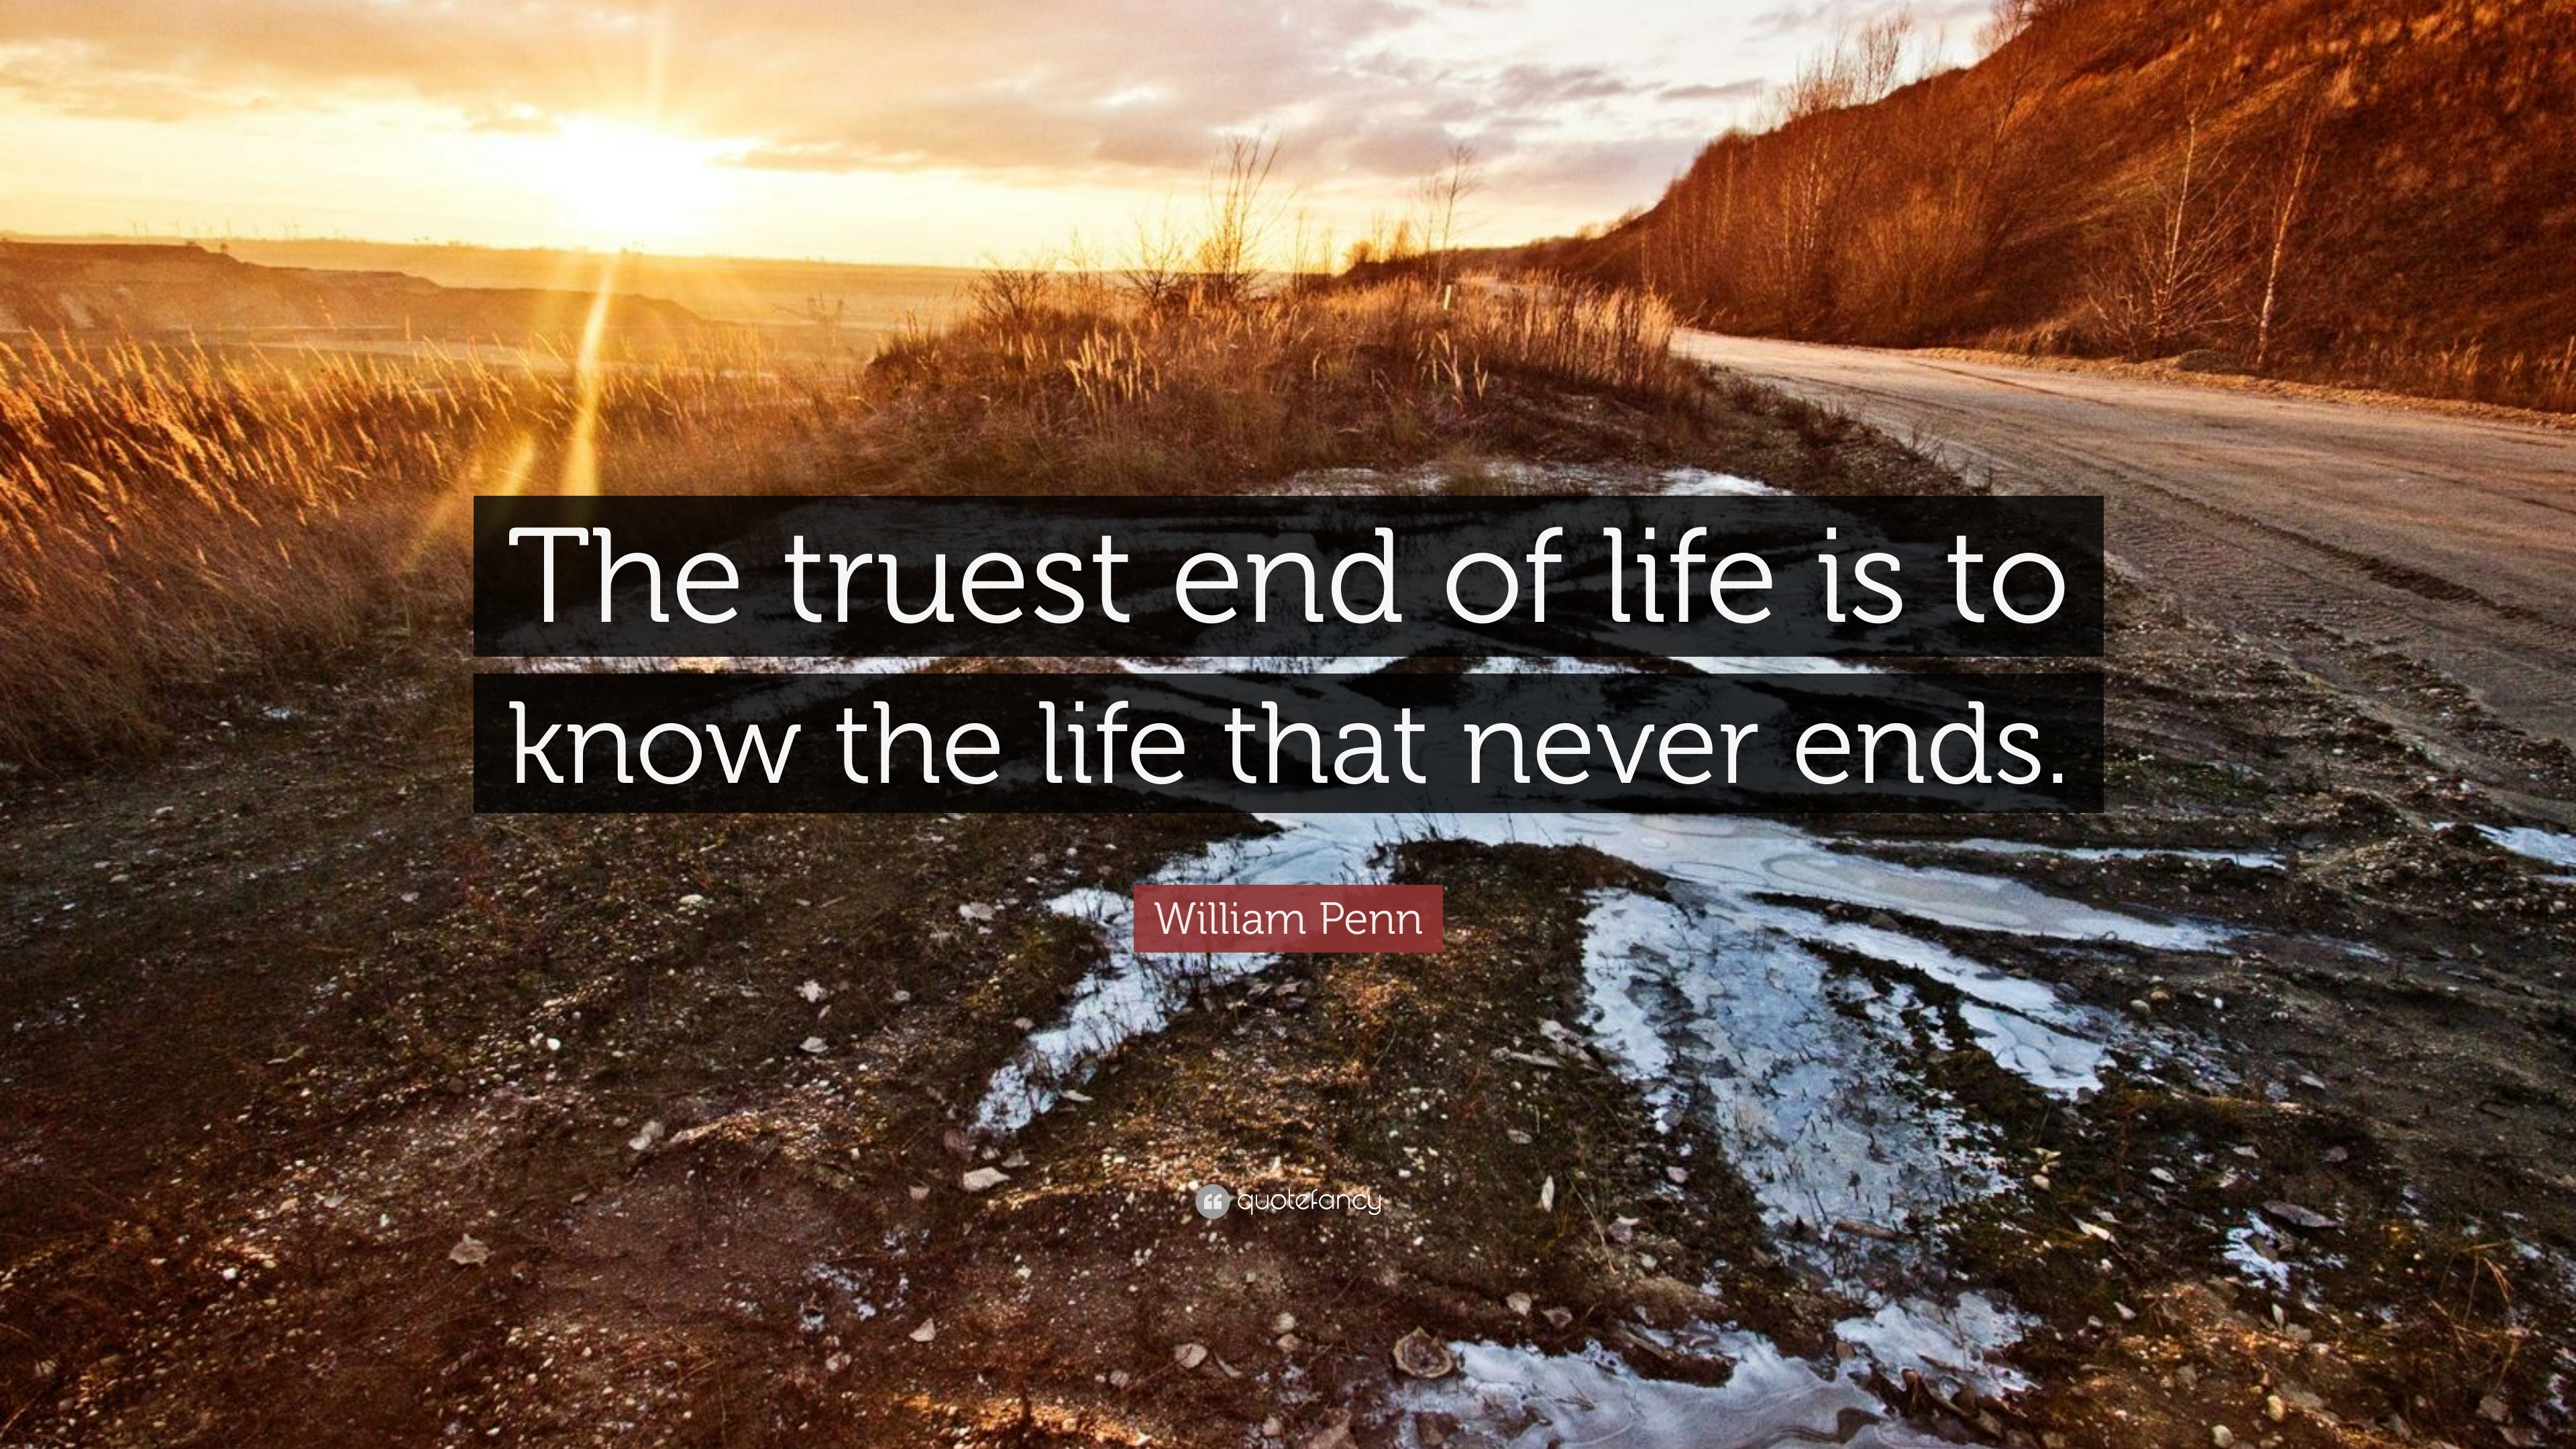 Quotes For End Of Life End Of Life Quotes Magnificent Ending Quotes  Motivational And